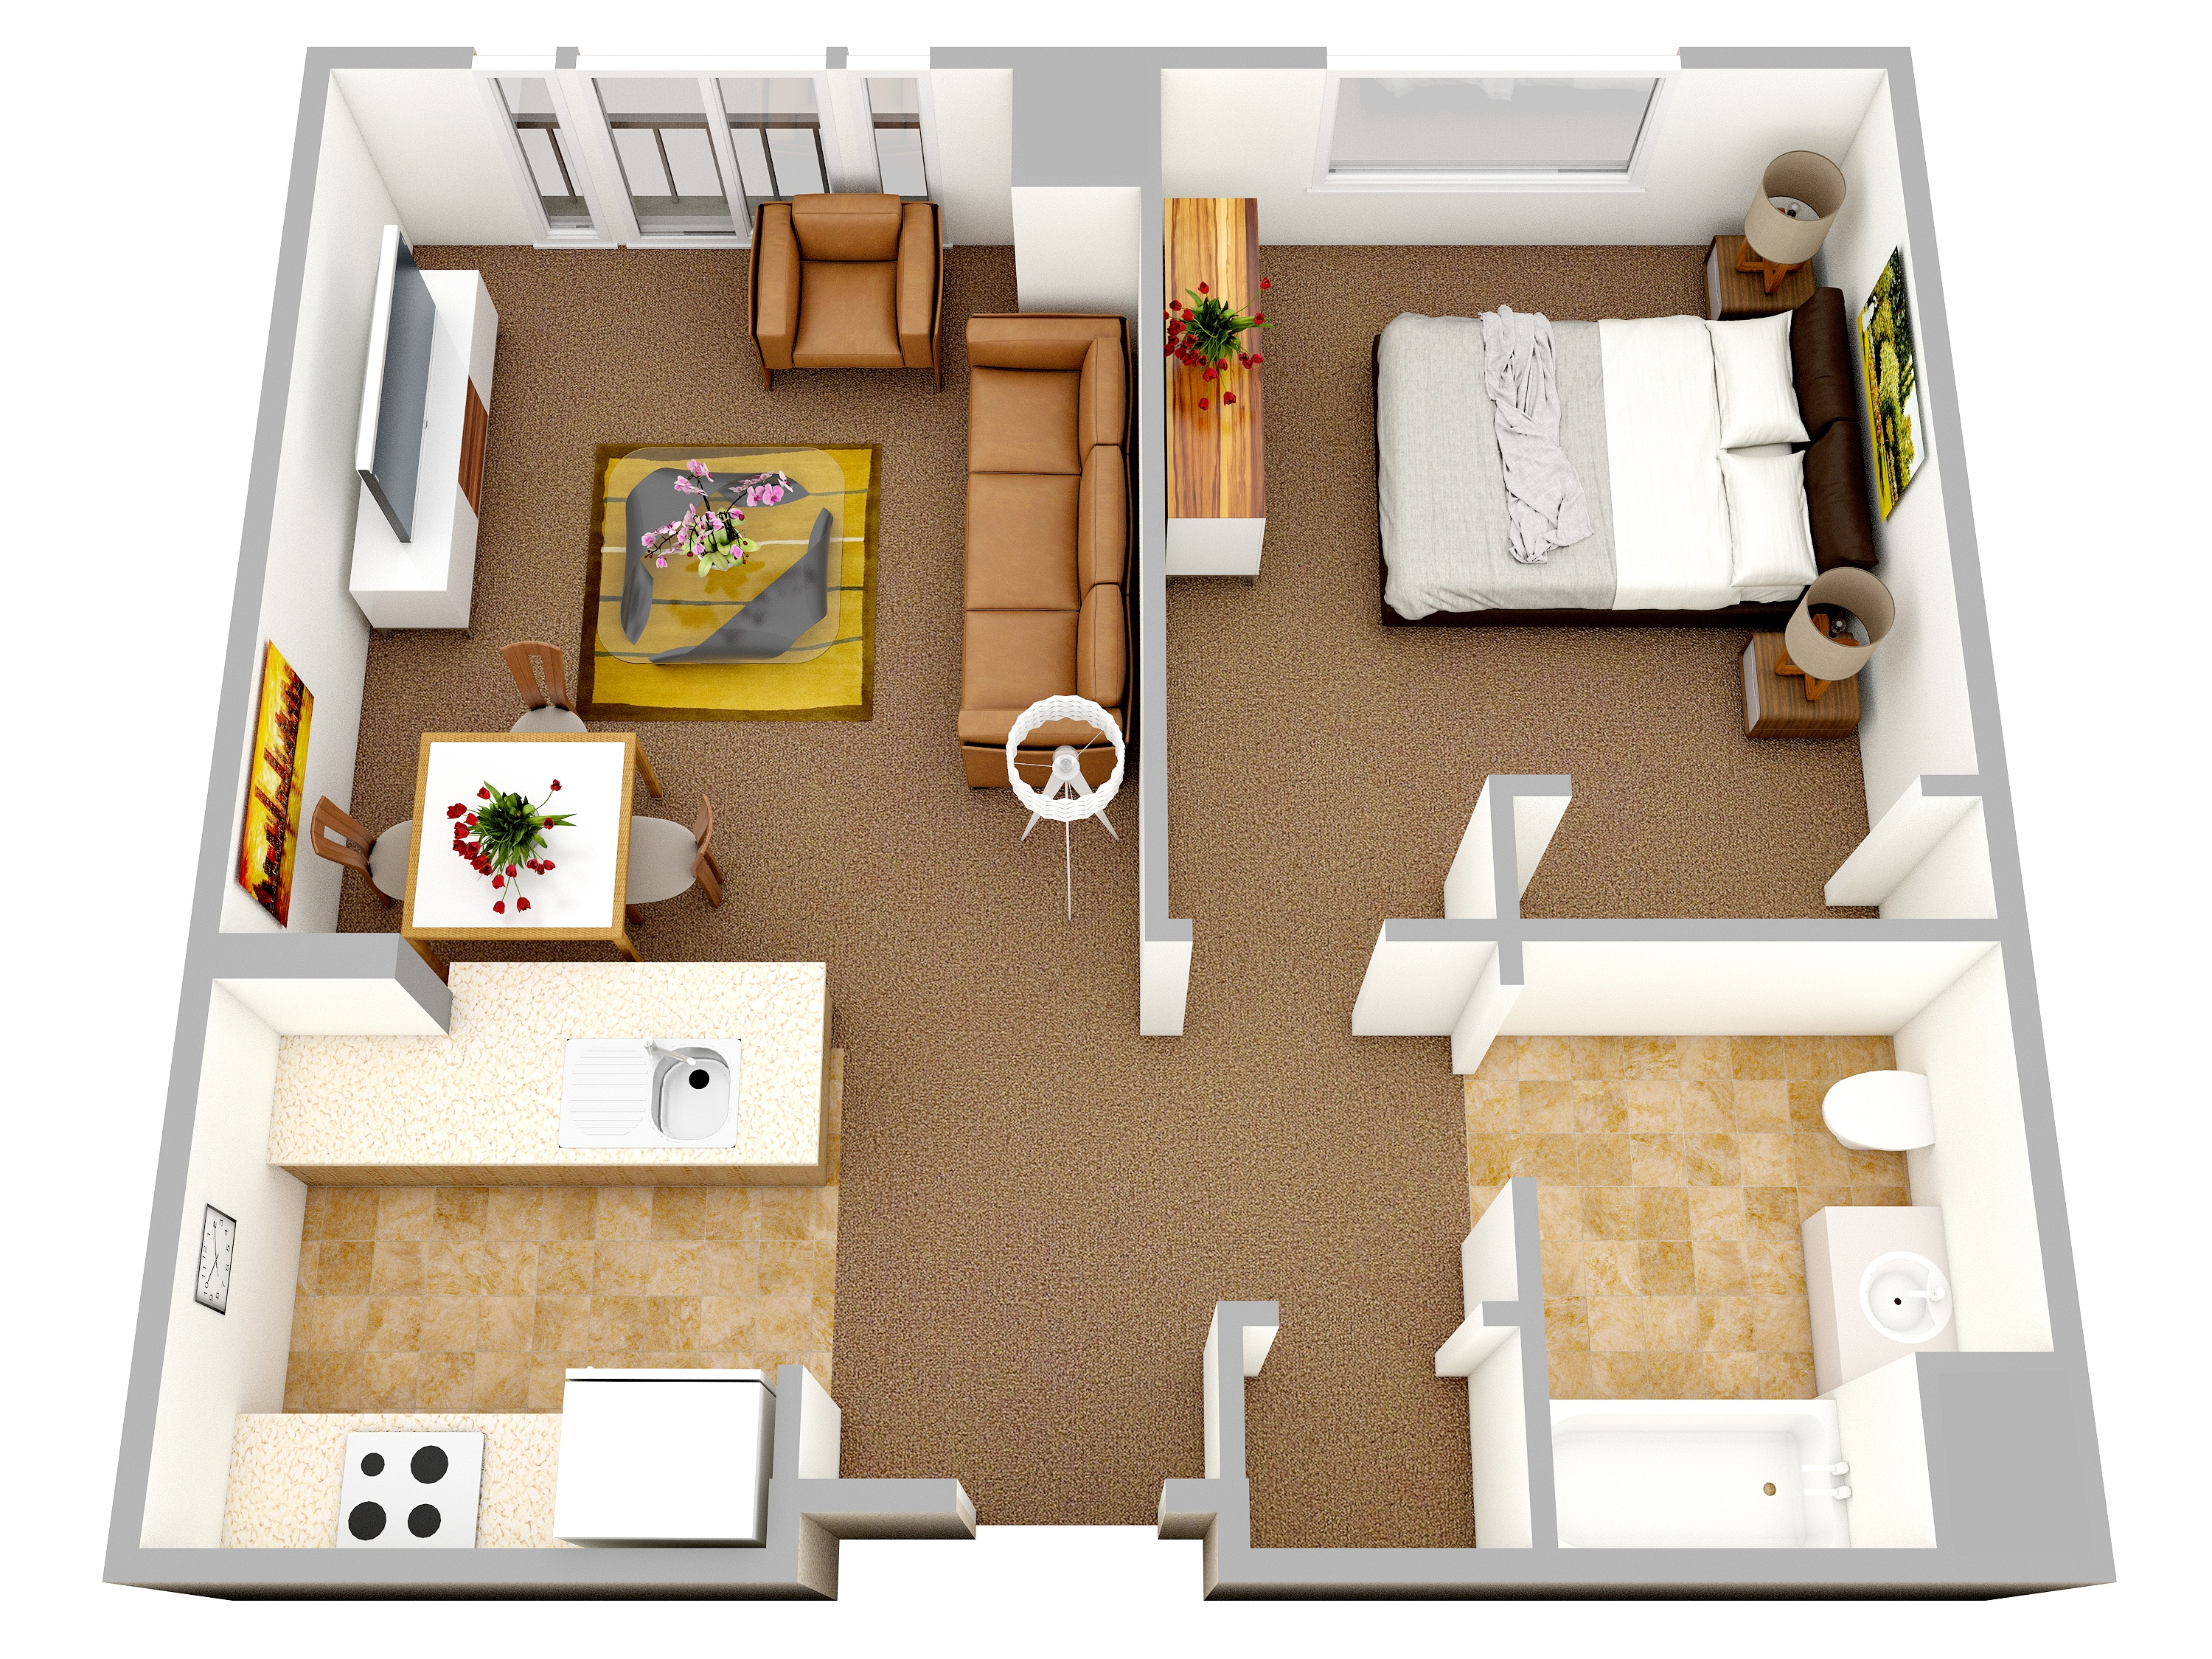 47 planos de apartamentos de 01 dormitorio tikinti for Two bedroom apartment decorating ideas